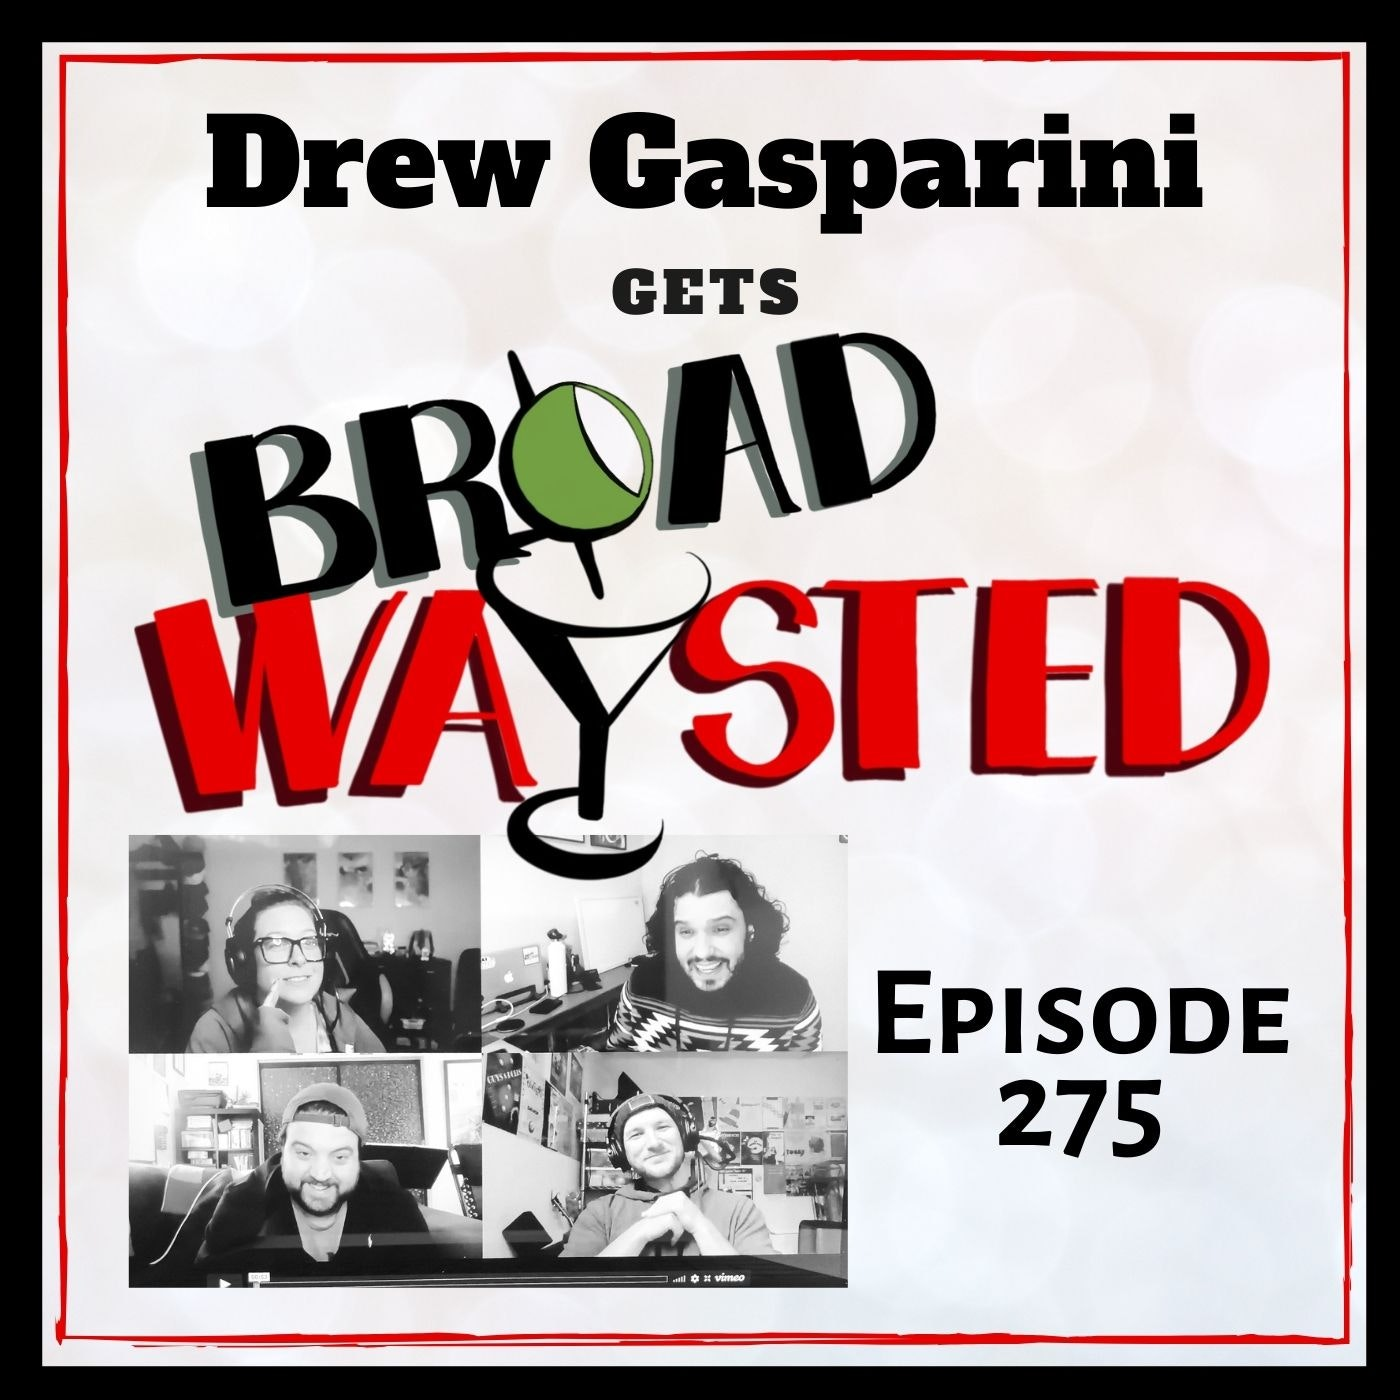 Episode 275: Drew Gasparini gets Broadwaysted!